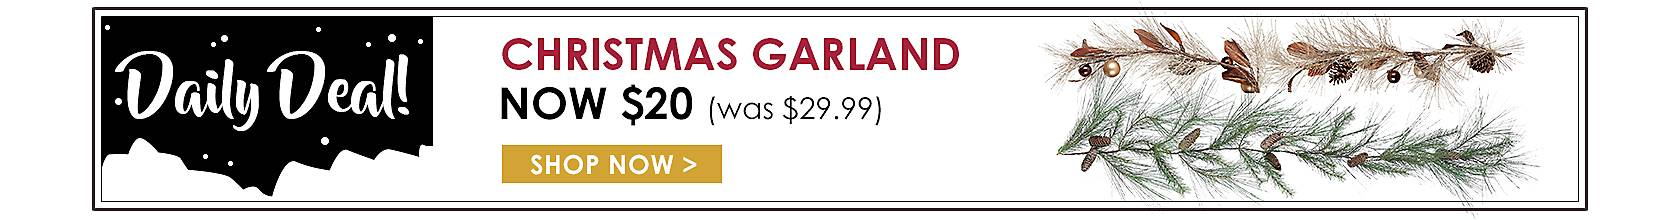 Daily Deals - Christmas Garland Now $20 - Shop Now